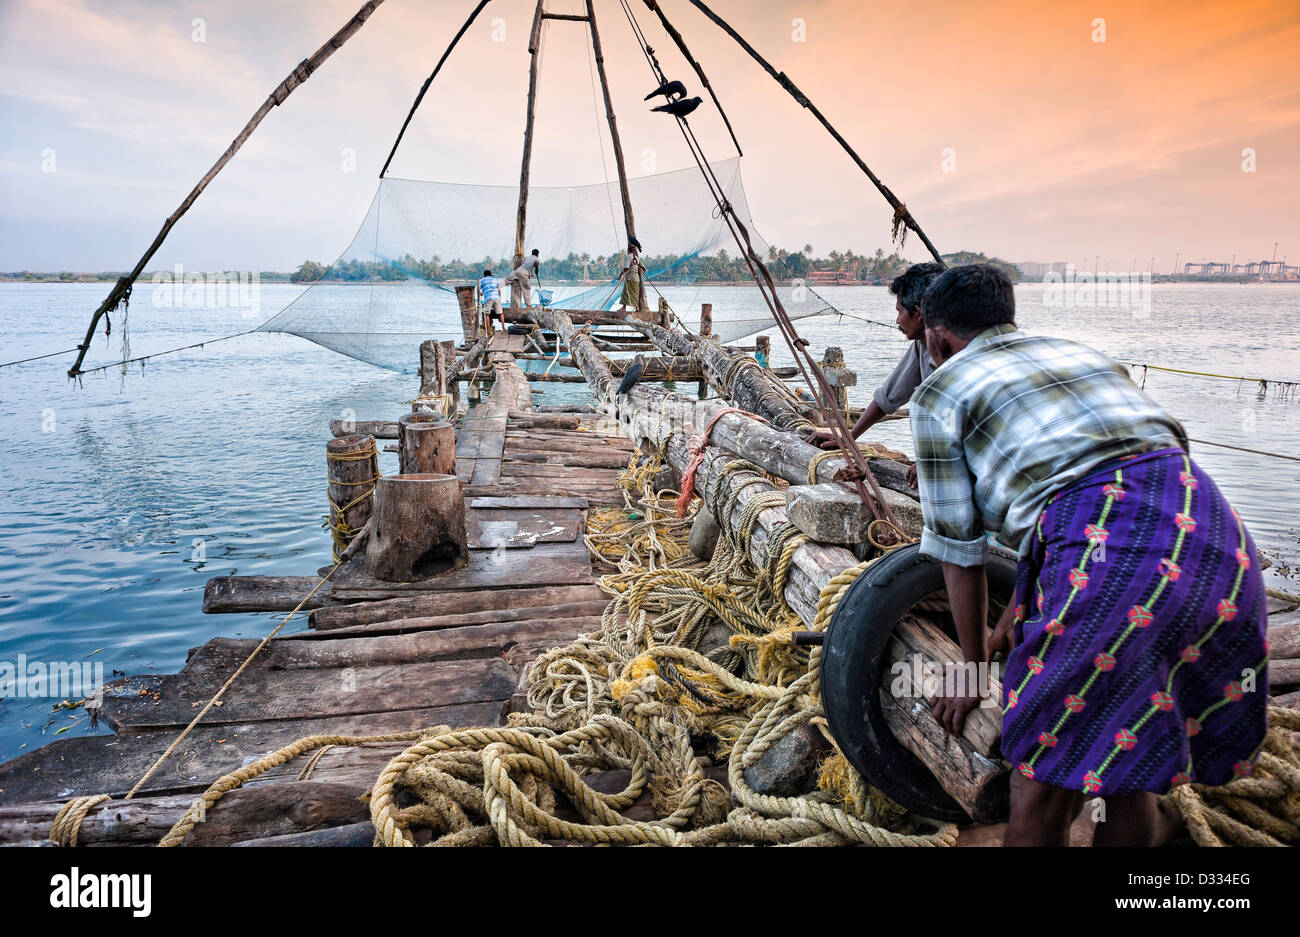 086daea6895 Fishermen operate an old Chinese fishing net in the harbour at Fort Kochi